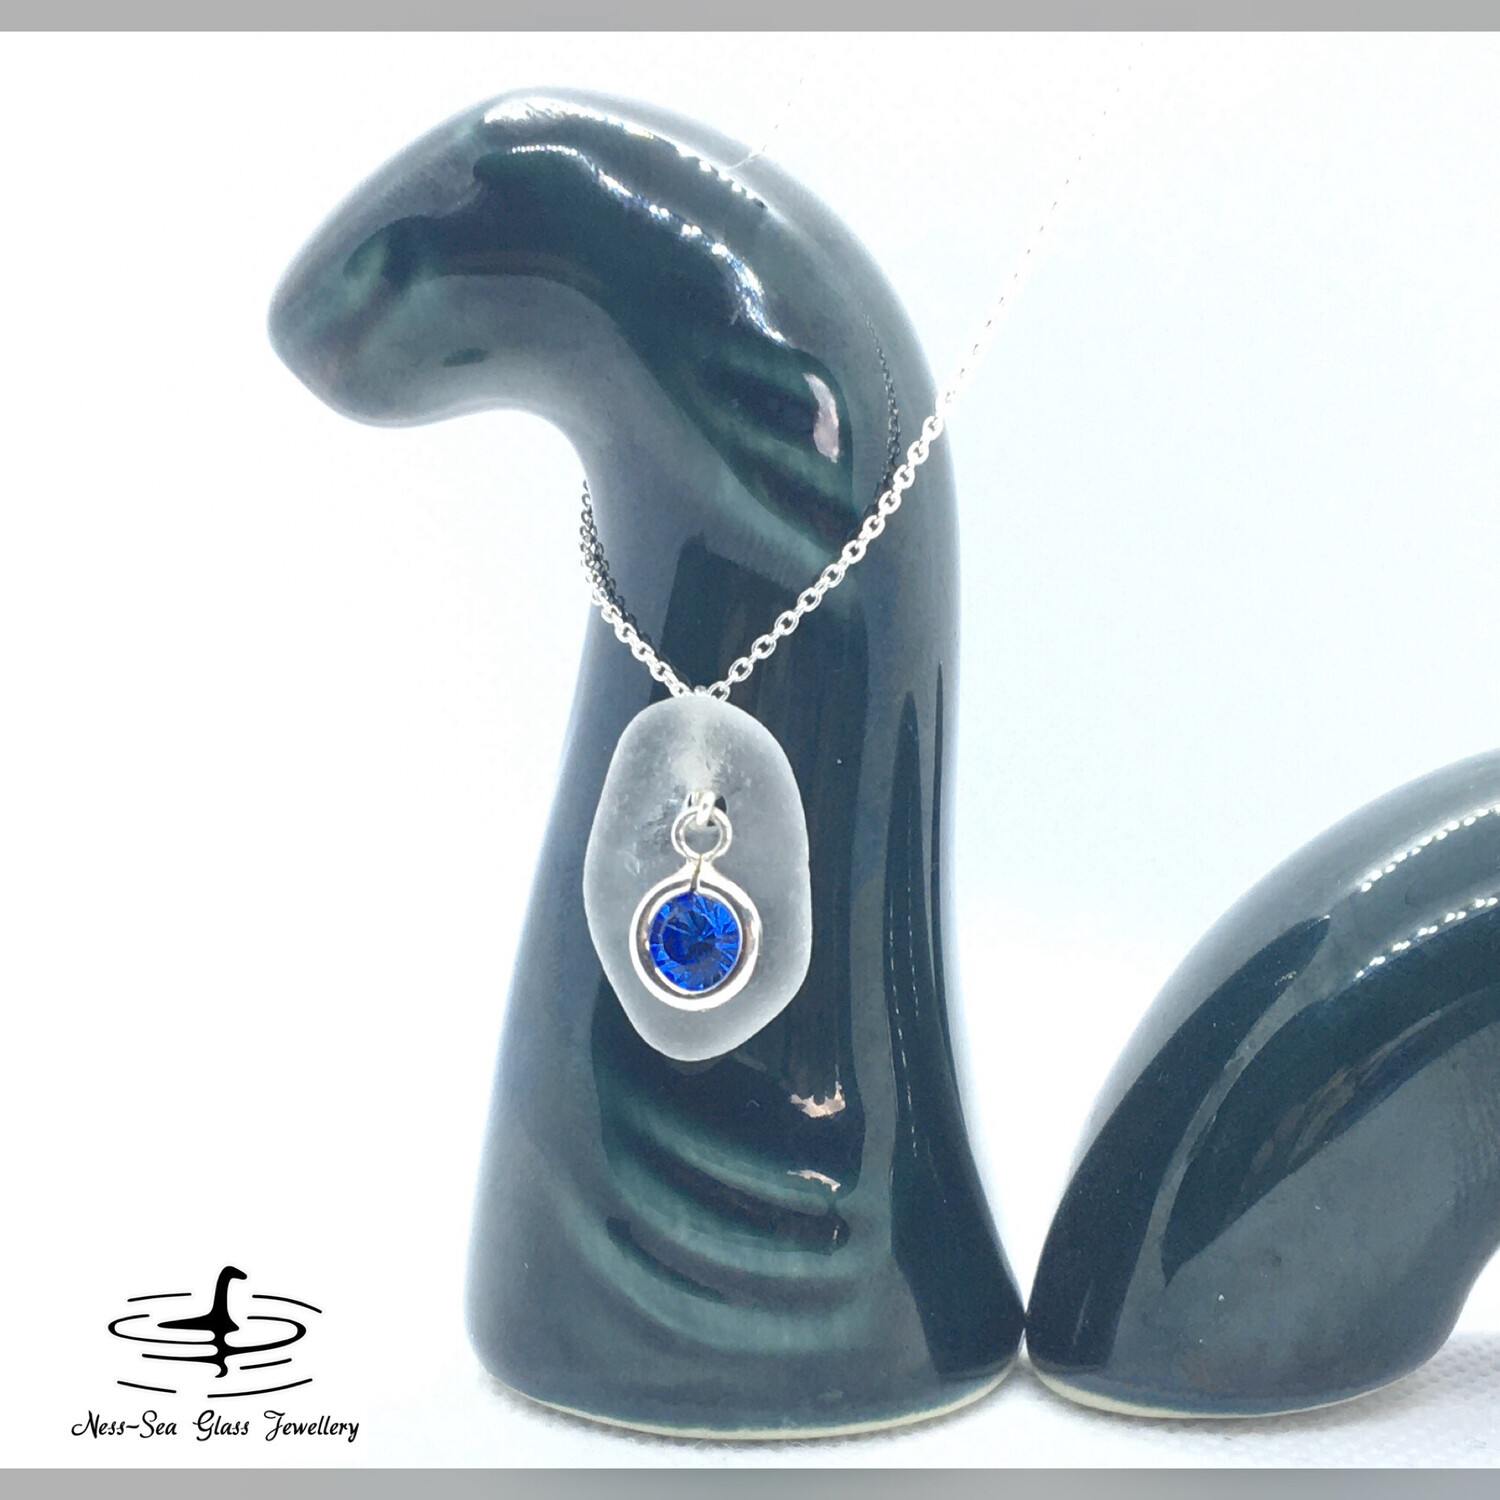 SEPTEMBER - Clear Loch Ness Sea Glass with Sterling Silver Sapphire Charm and Fine Sterling Silver Chain Necklace